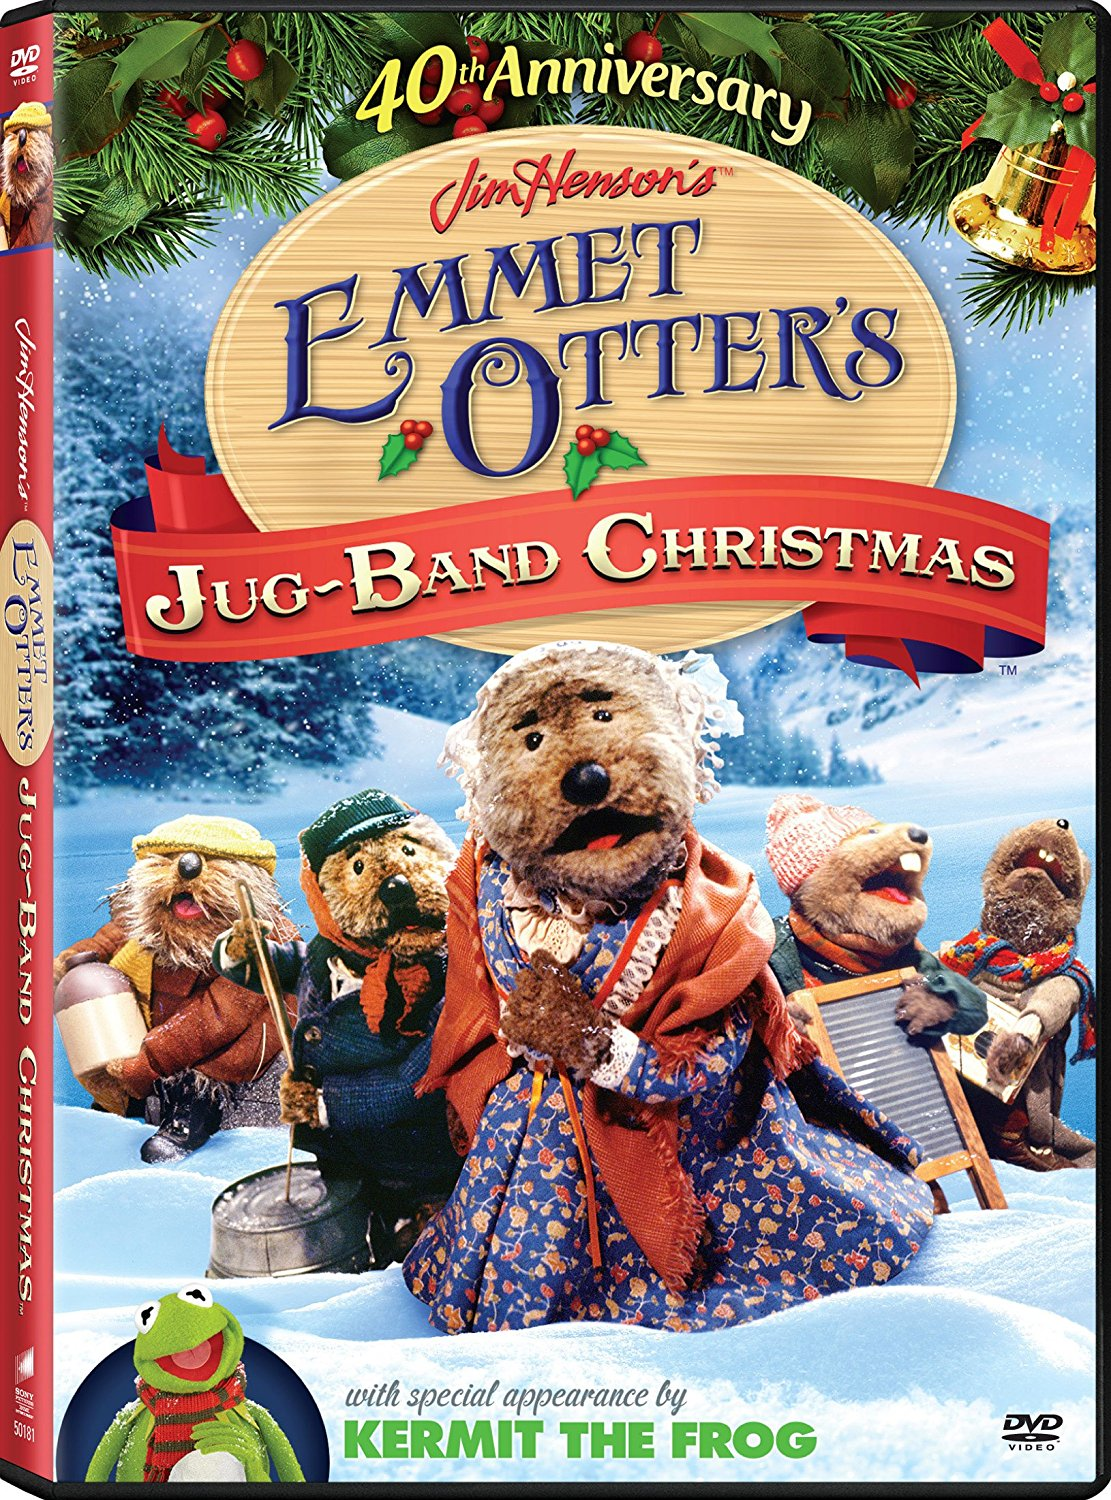 Muppet Stuff: Emmet Otter's Jug-Band Christmas 40th Anniversary DVD!